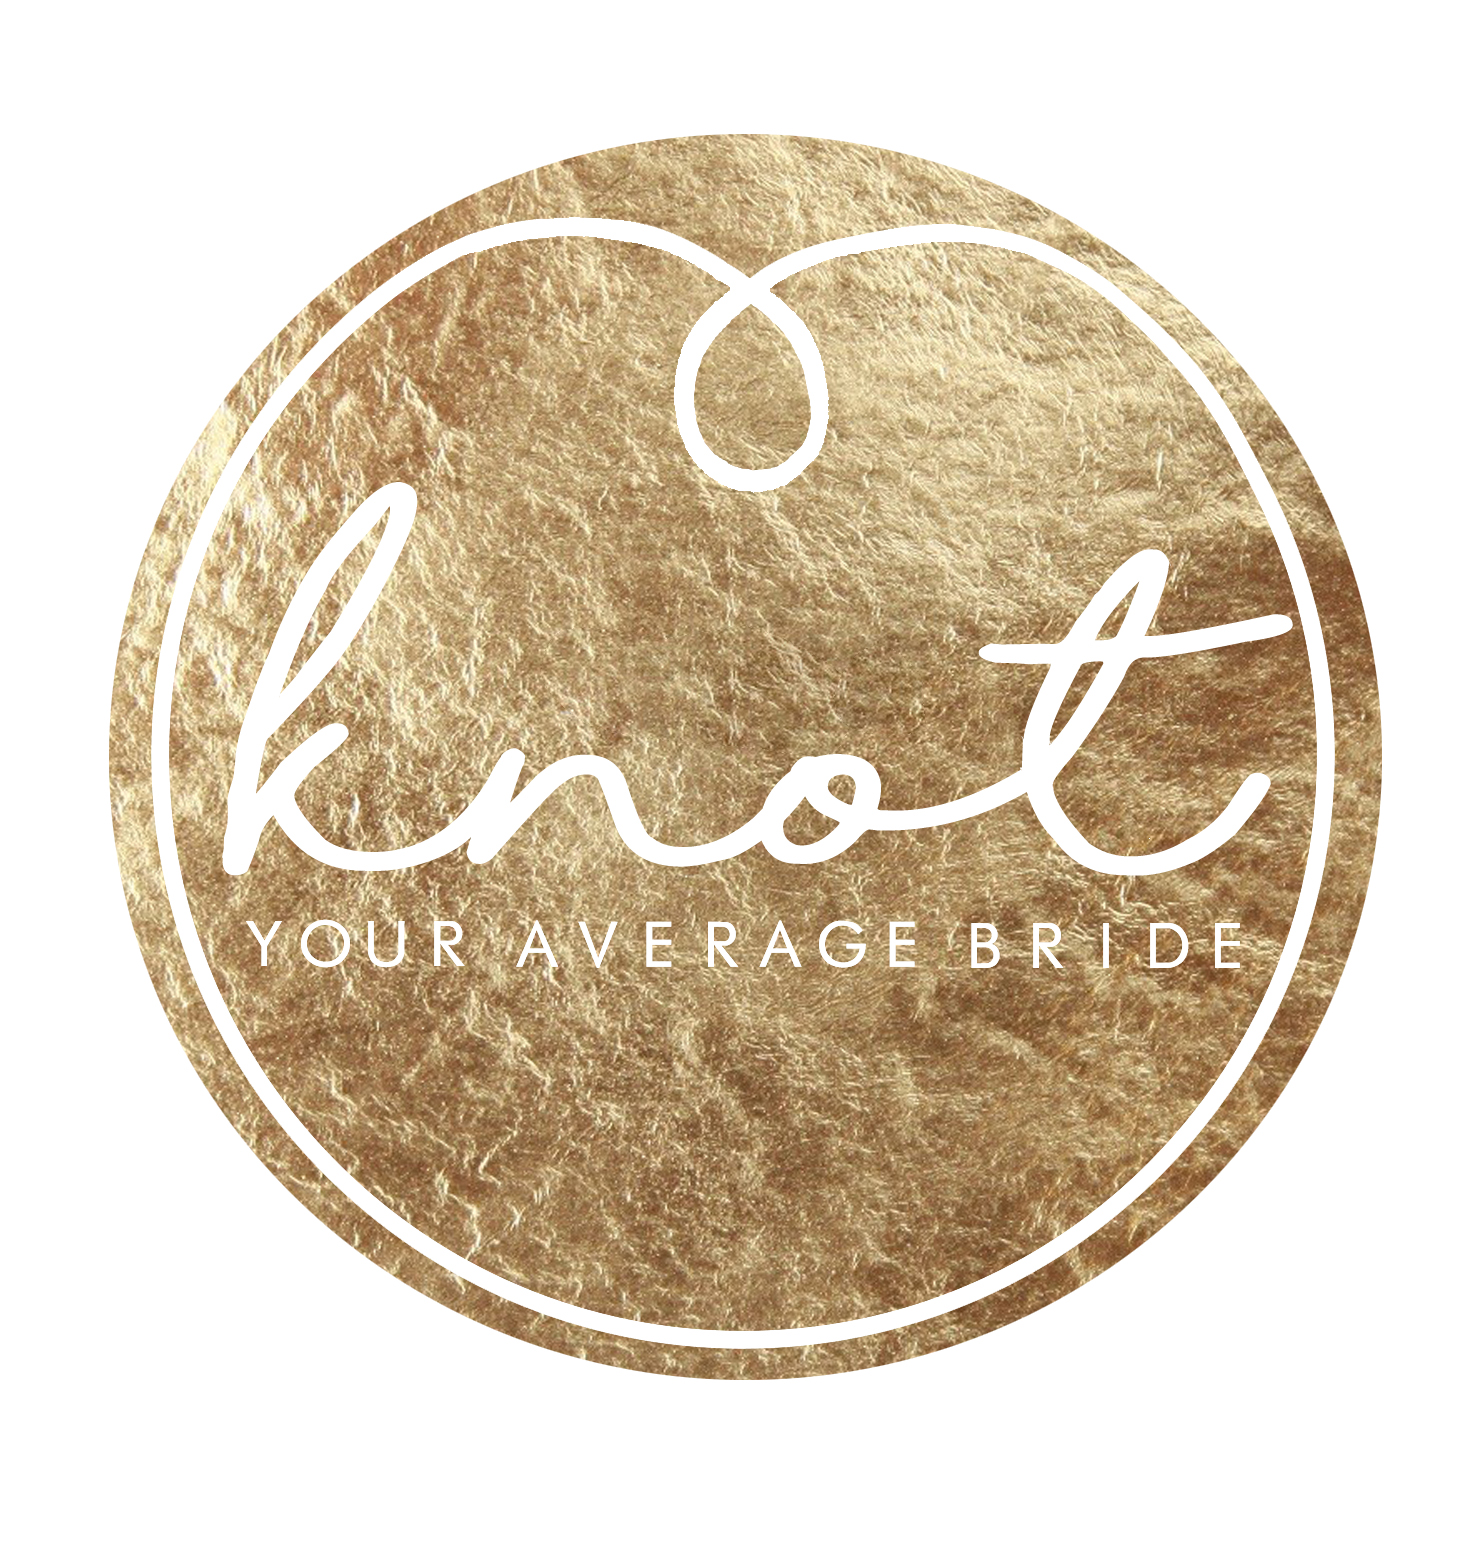 KNOT YOUR  AVERAGE BRIDE